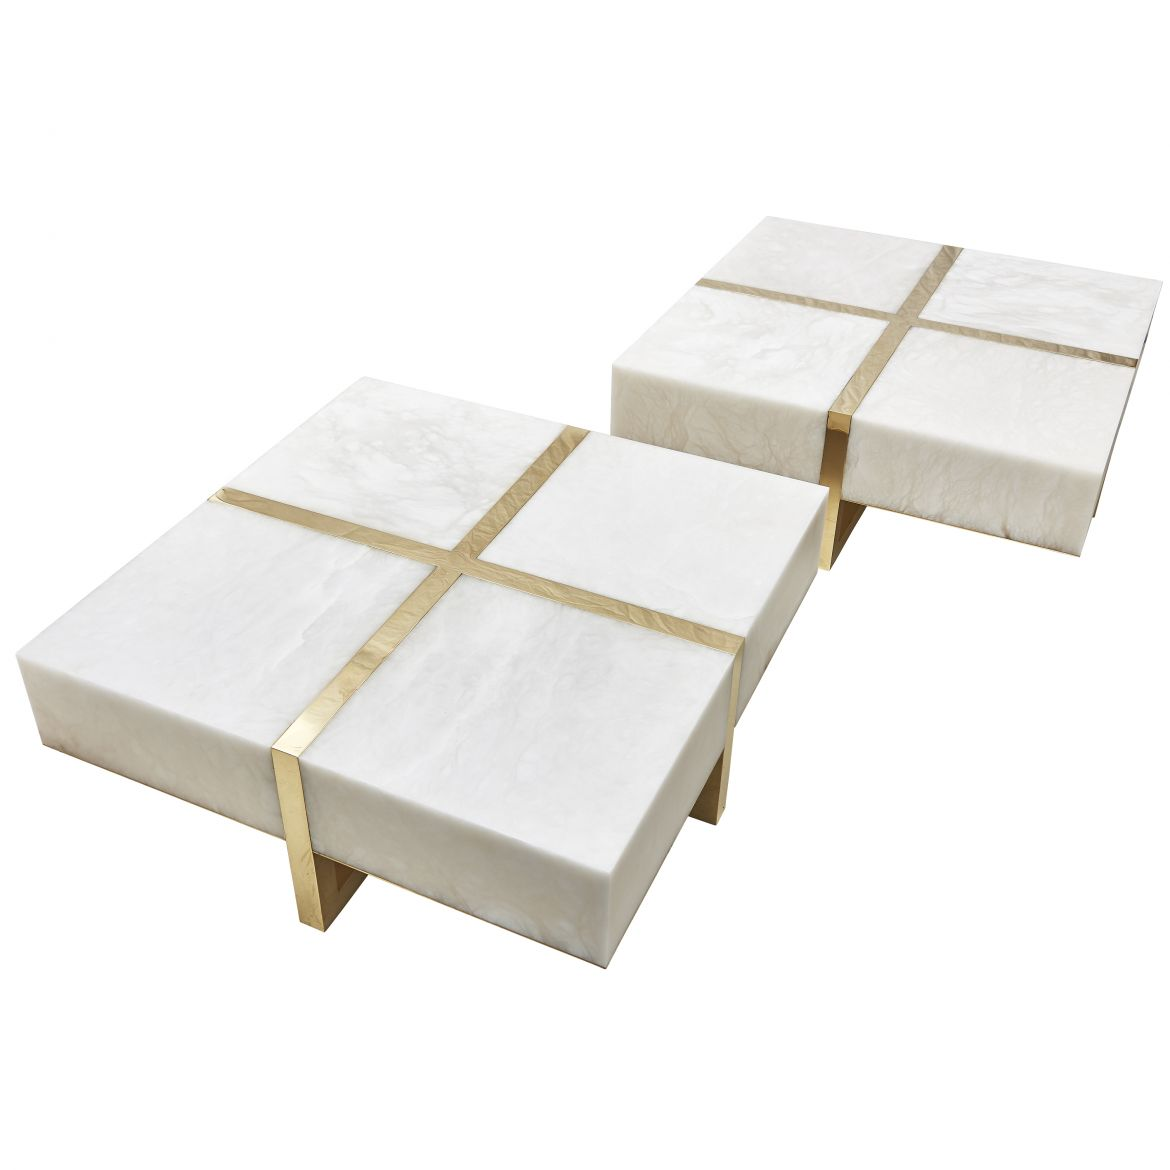 Arriau Cadeau Alabaster Two Part Coffee Table